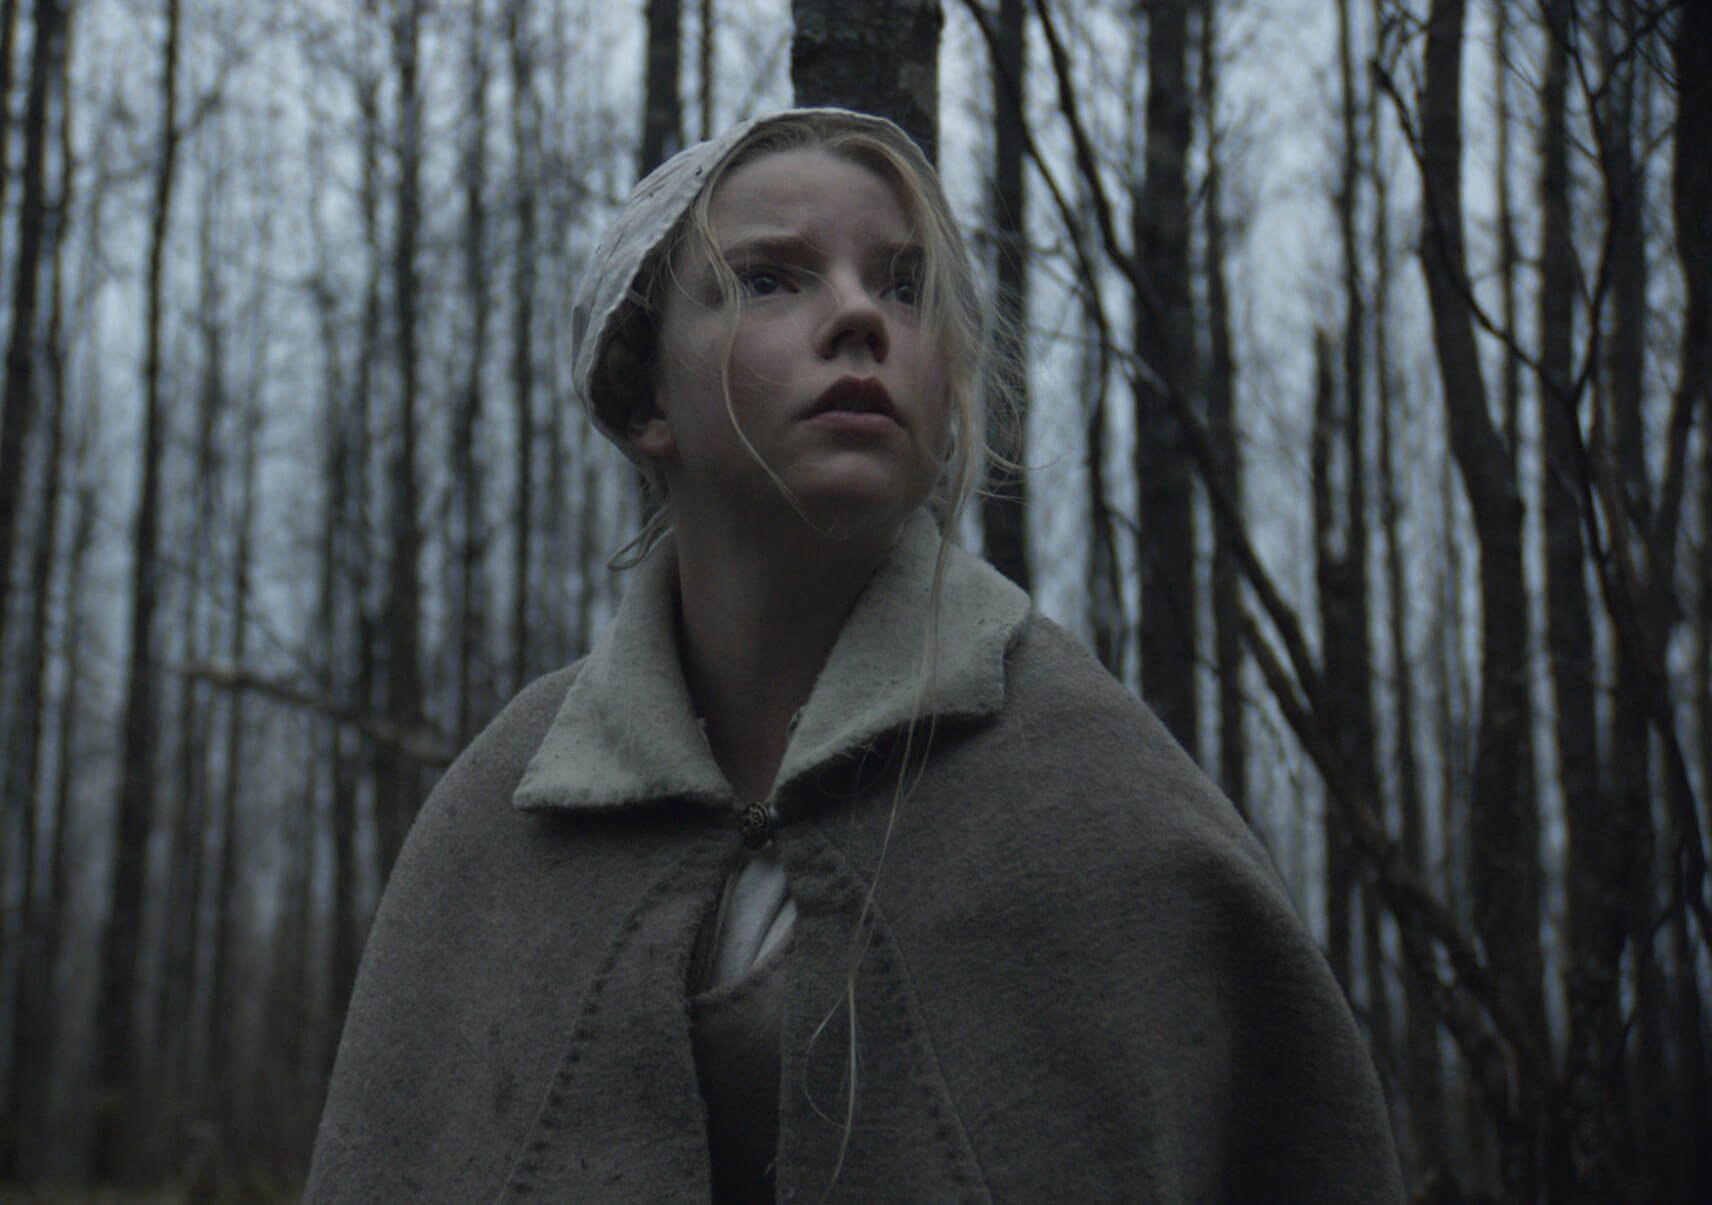 Video still from The Witch